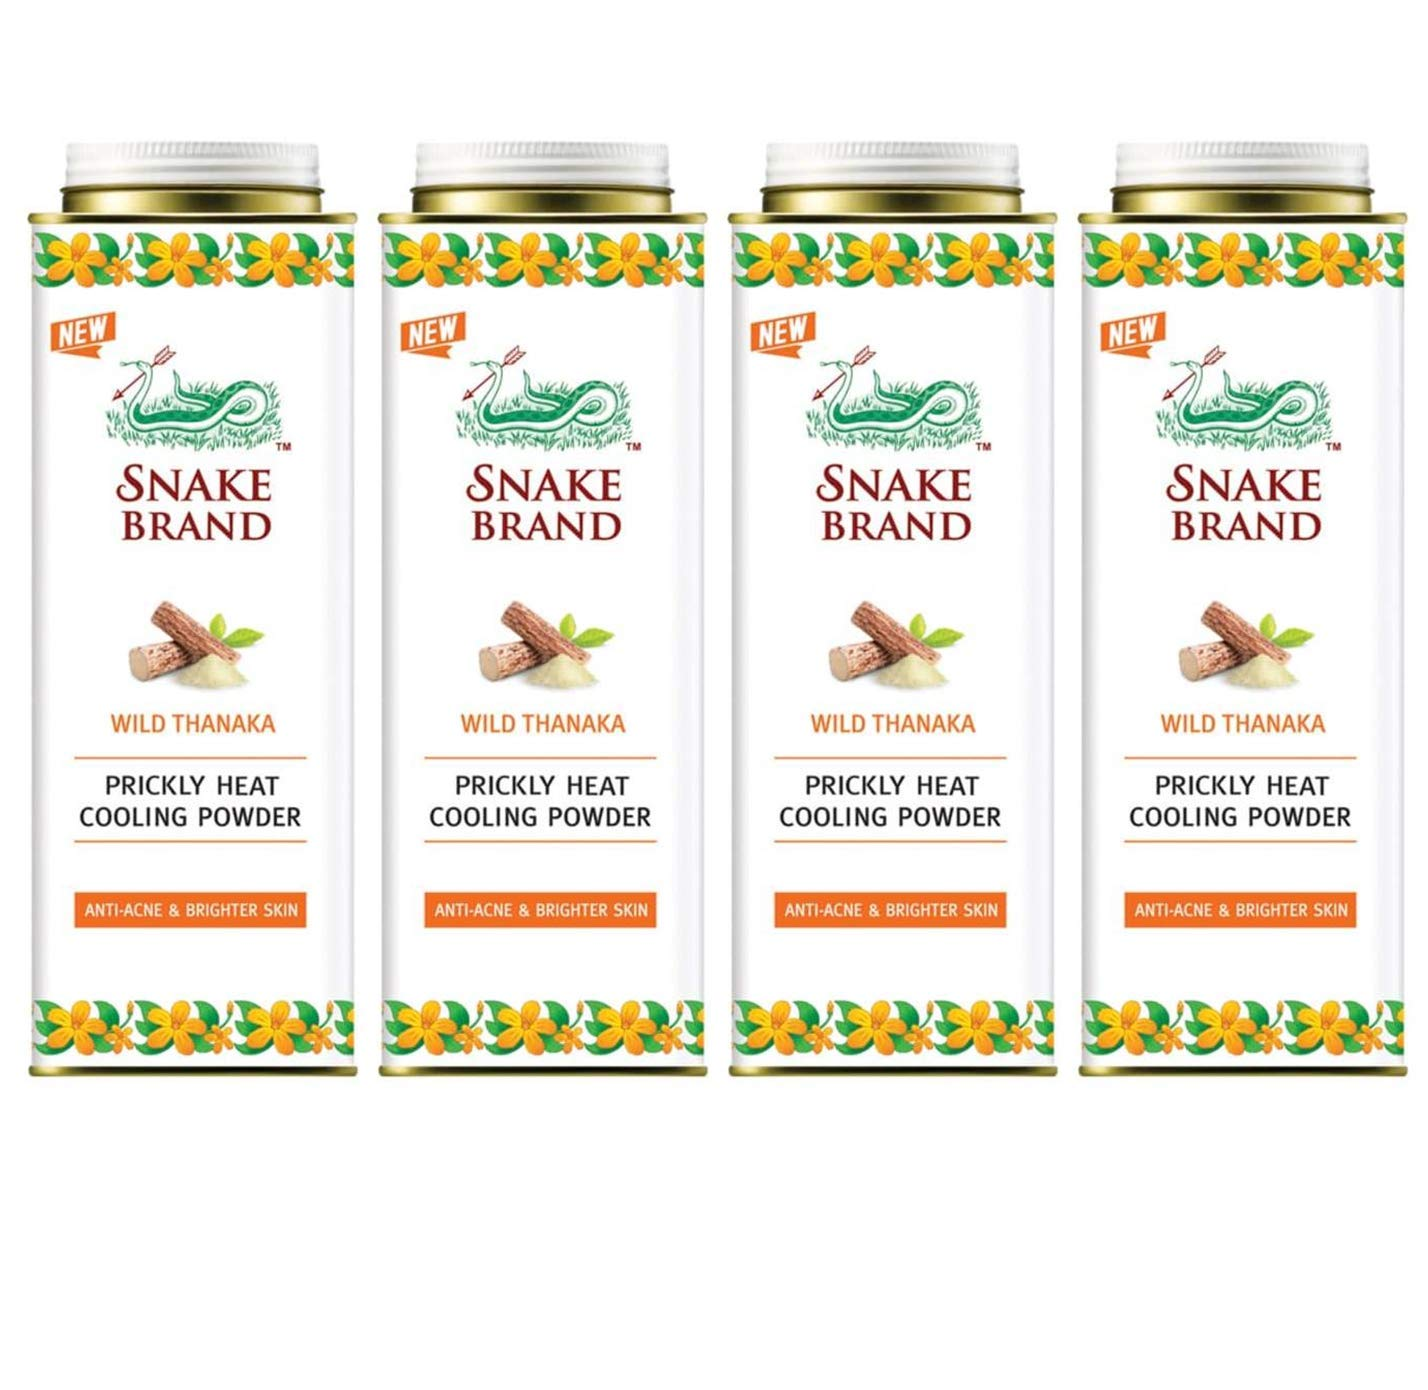 Snake Brand Prickly Heat Cooling Powder Tanaka 280 g. (4 Pack) by Snake Brand